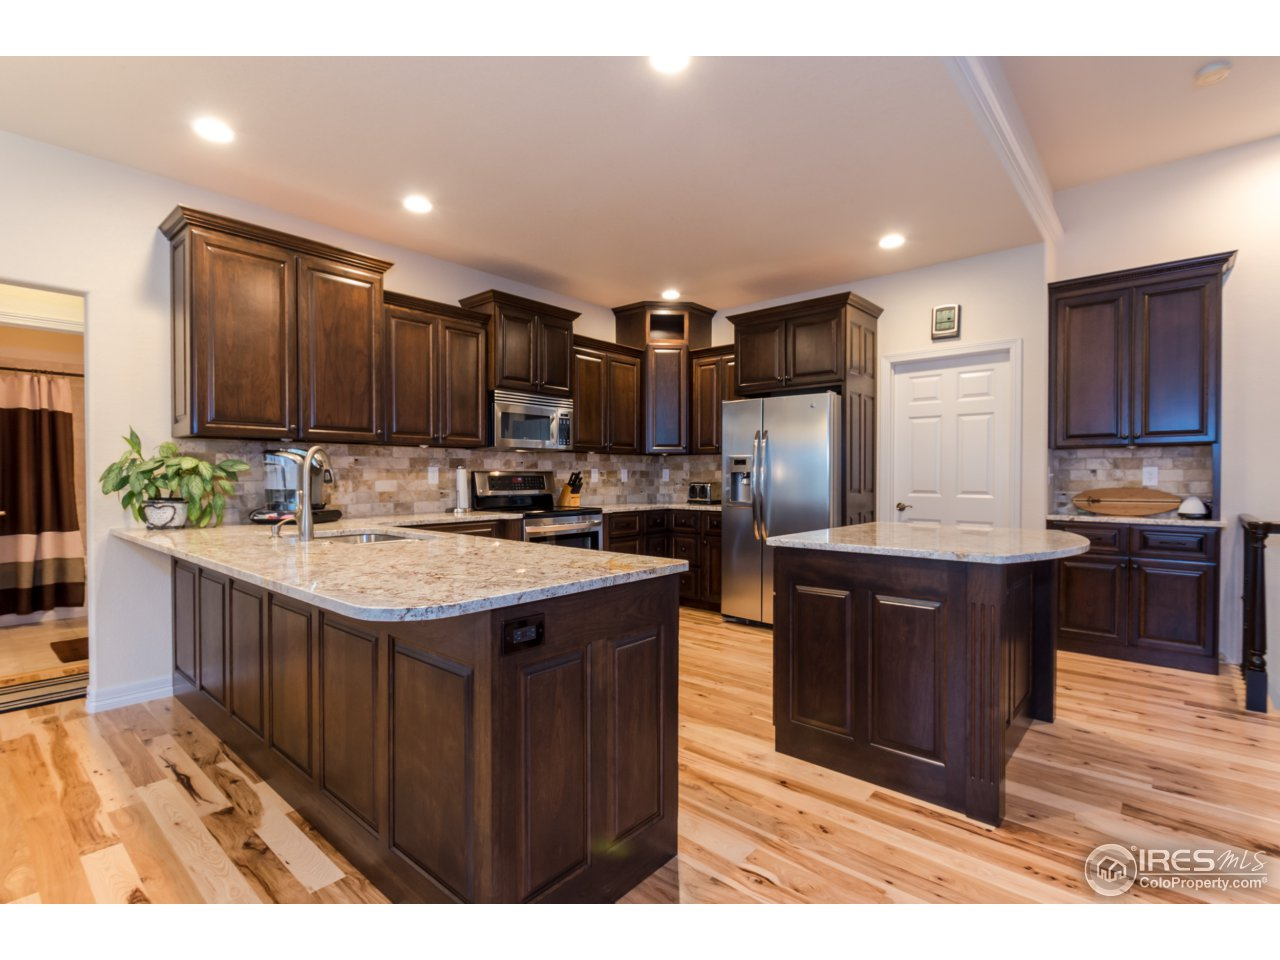 Property Photo For 6692 Sage Ave, Firestone, CO 80504, MLS # 836093